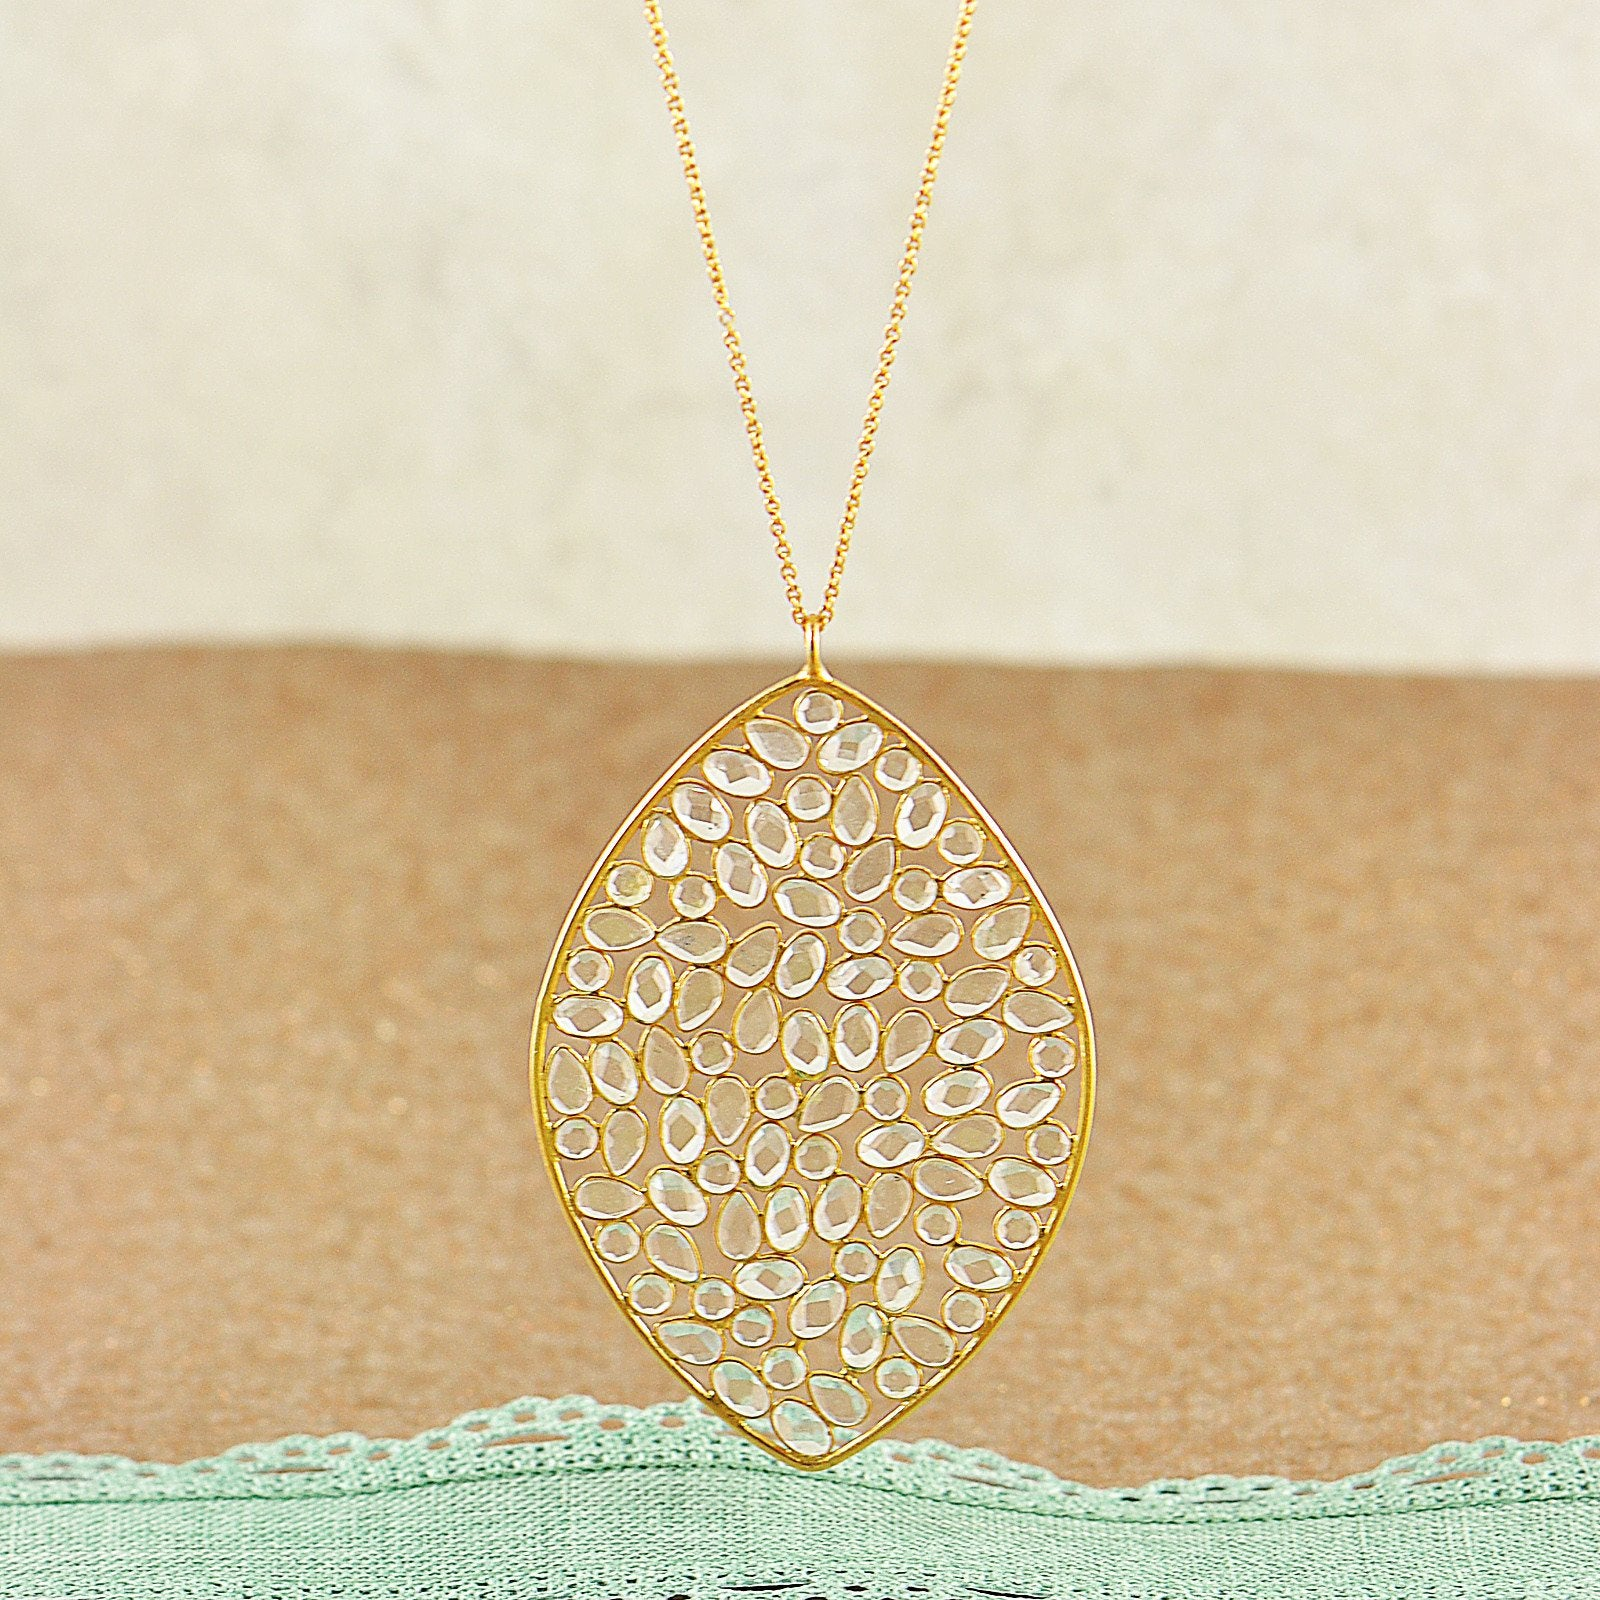 Gorgeous Handset Moonstone Pendant Necklace in Gold Vermeil